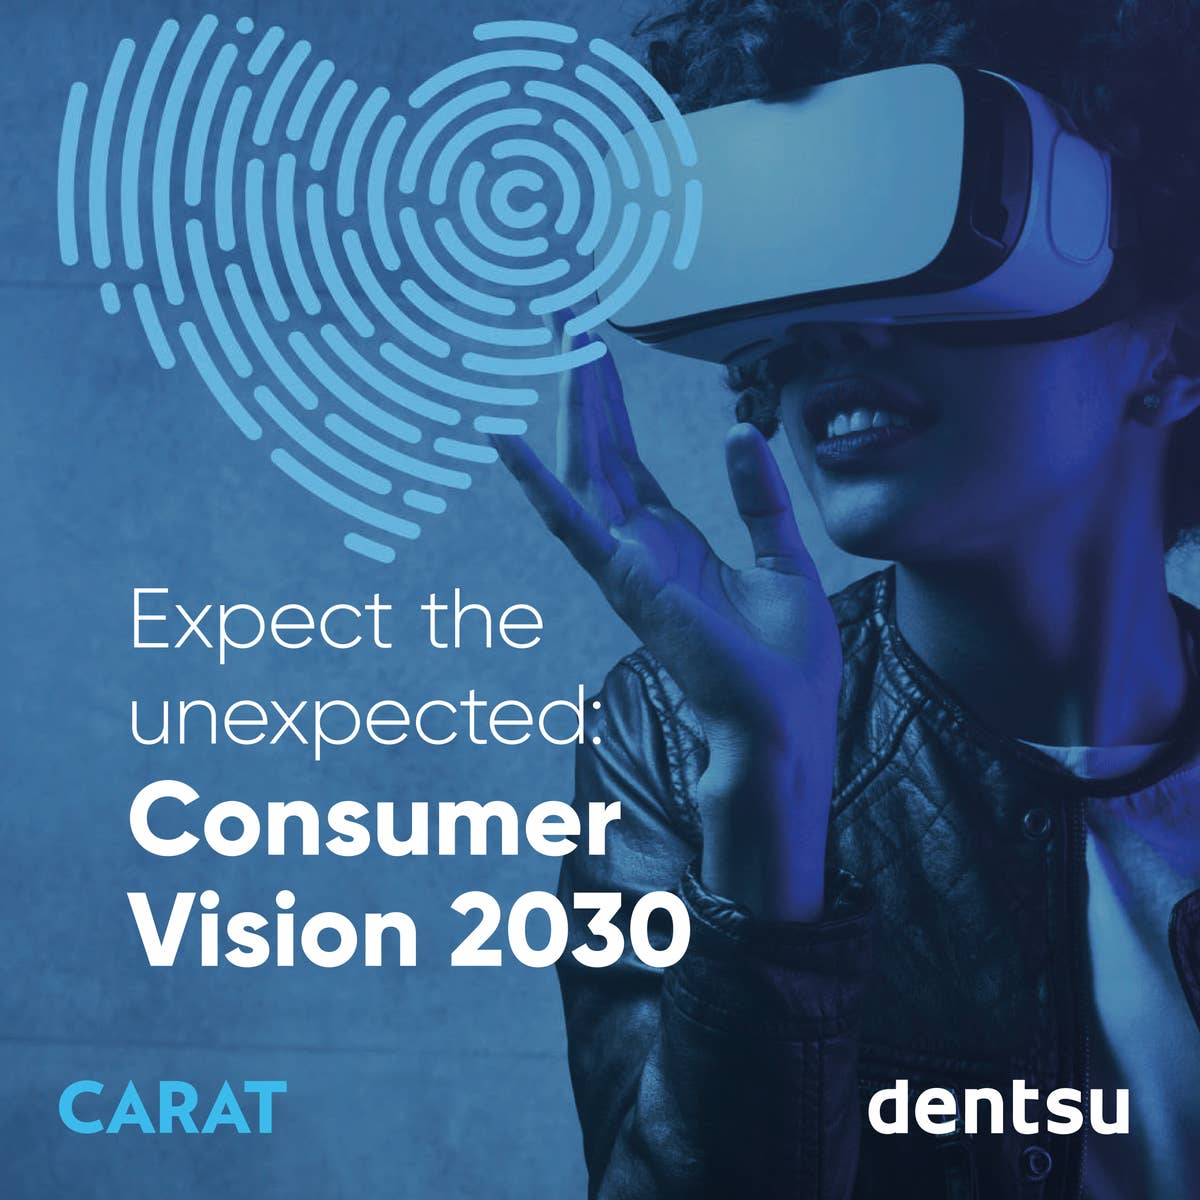 Expect the unexpected: CONSUMER VISION 2030